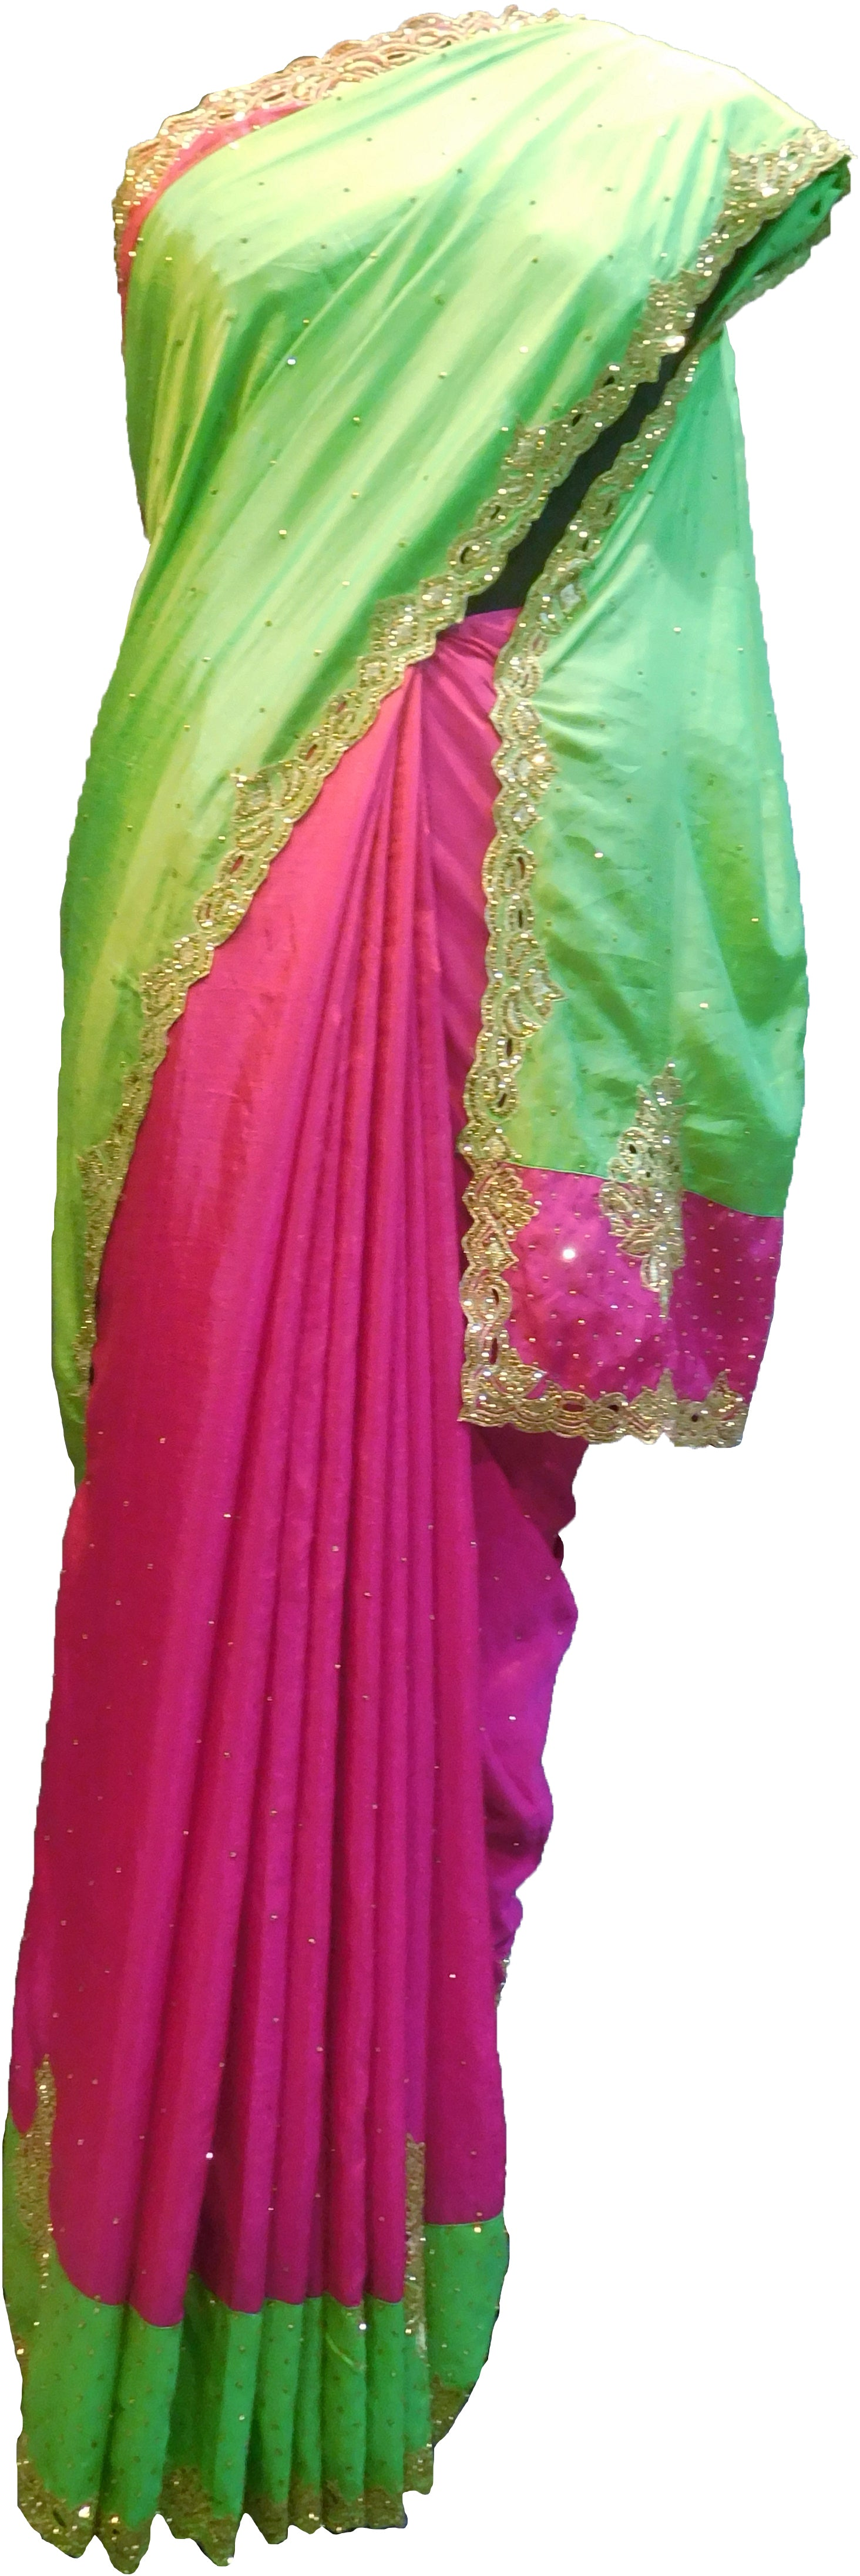 SMSAREE Green & Pink Designer Wedding Partywear Silk Stone & Zari Hand Embroidery Work Bridal Saree Sari With Blouse Piece F292